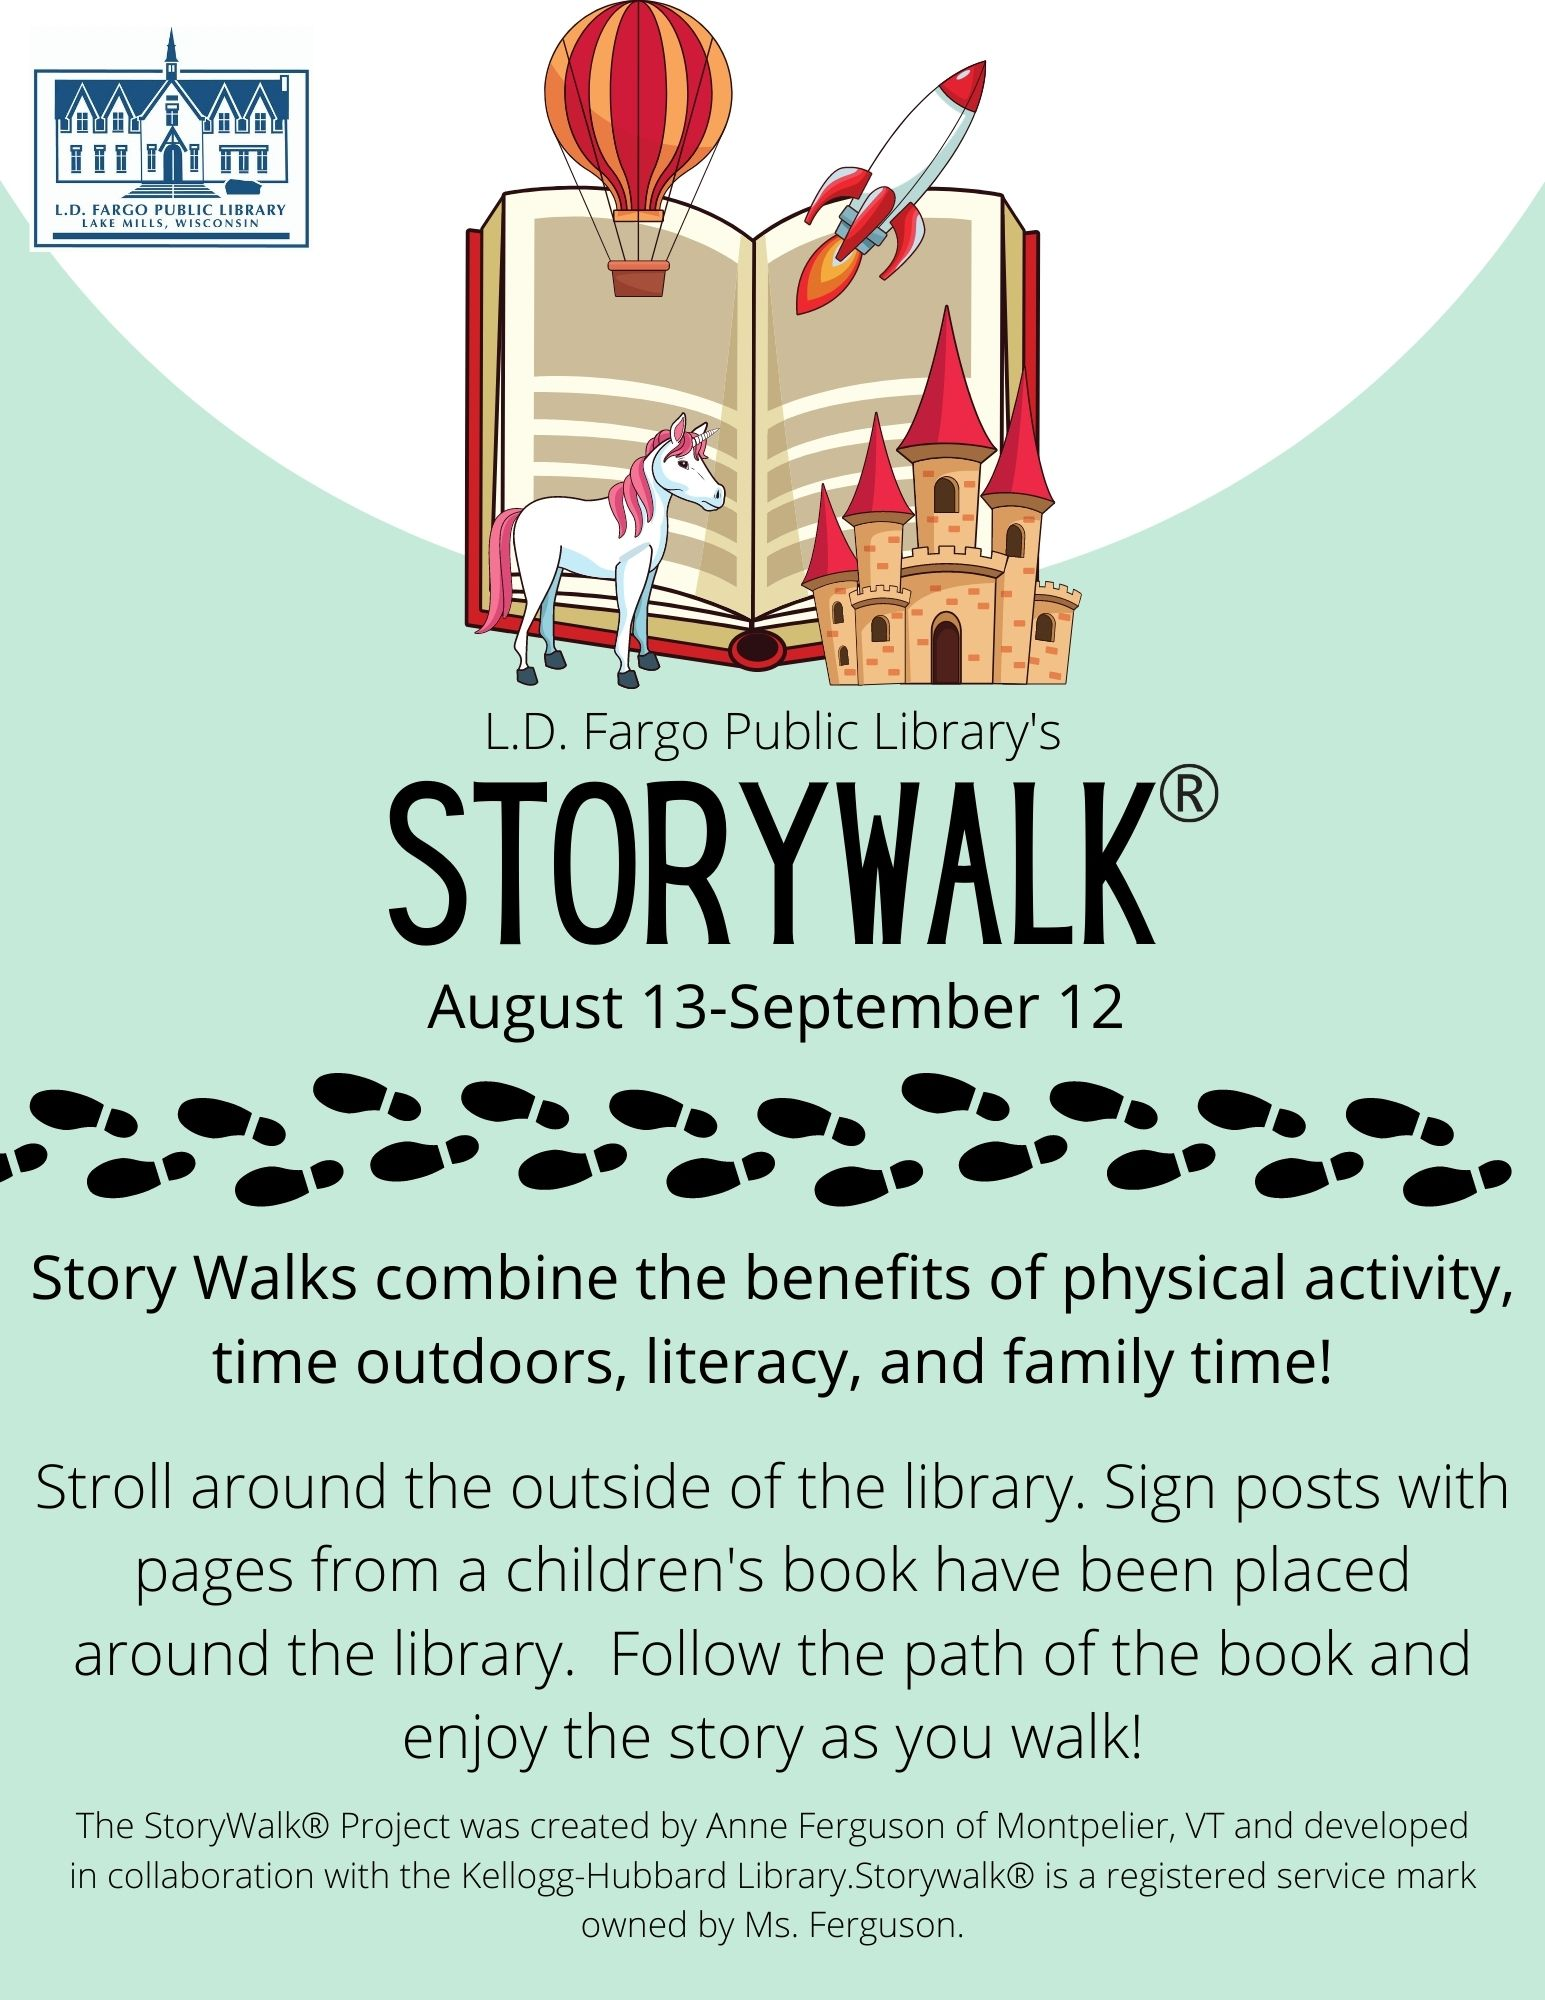 StoryWalk: Stroll around the outside of the library. Sign posts with pages from a children's book have been placed around the library.  Follow the path of the book and enjoy the story as you walk!